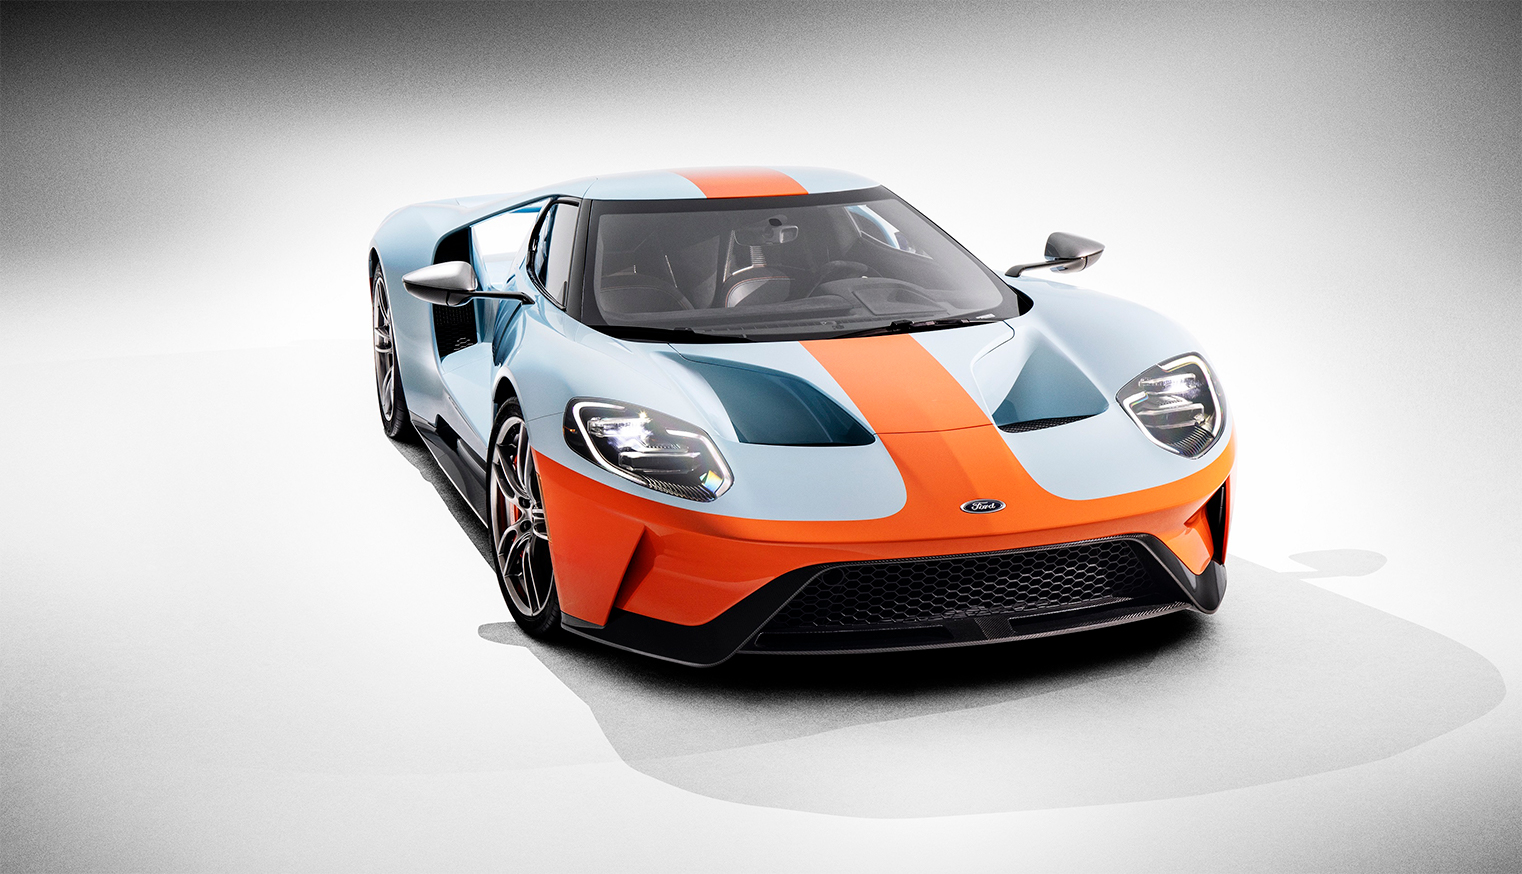 TrackWorthy - Ford GT Heritage Edition model celebrates the 50th anniversary